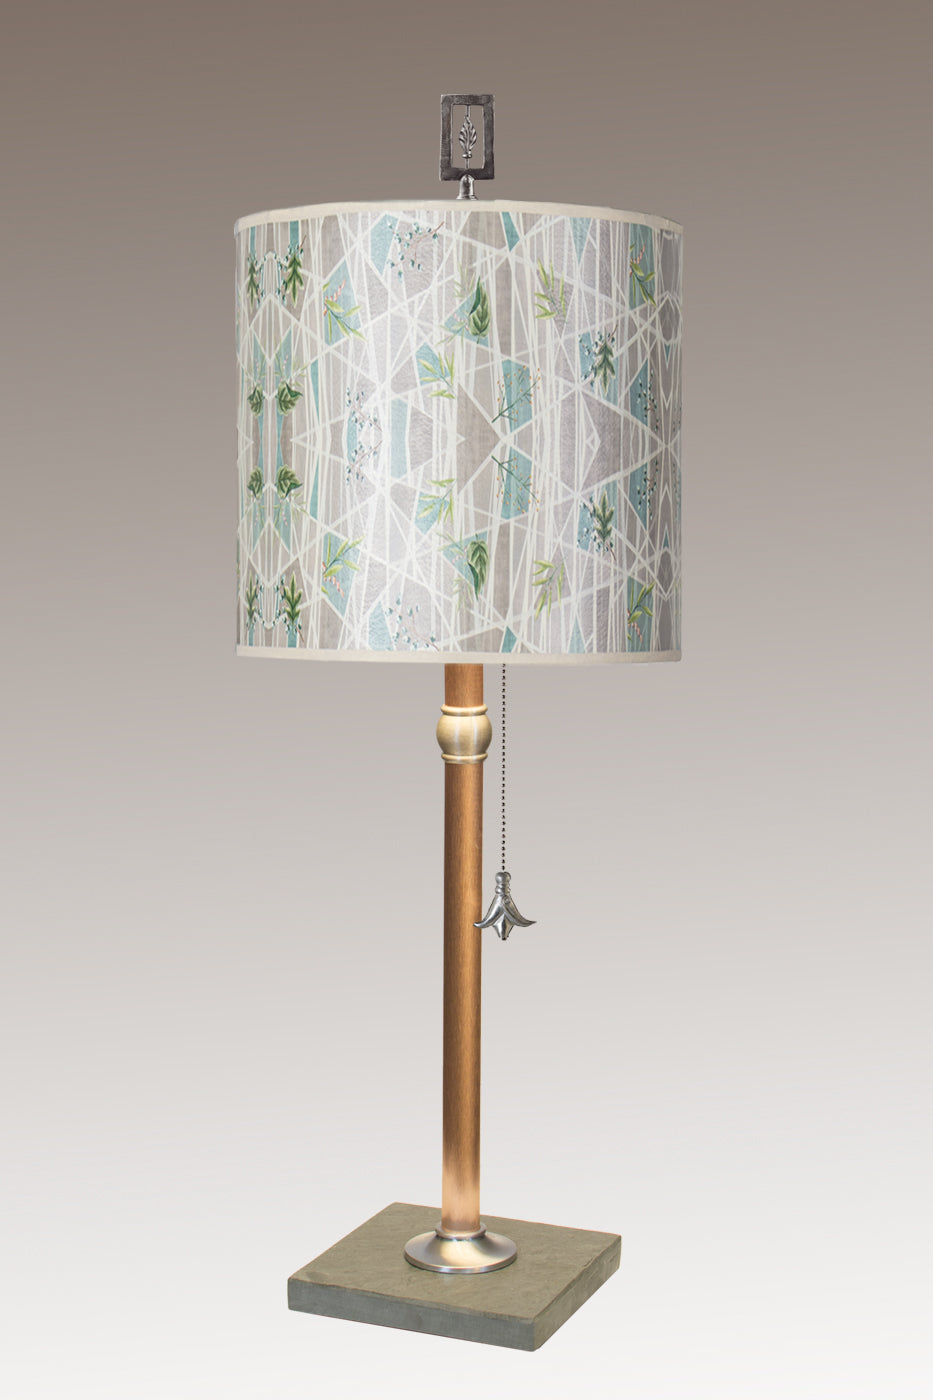 Copper Table Lamp with Medium Drum Shade in Prism